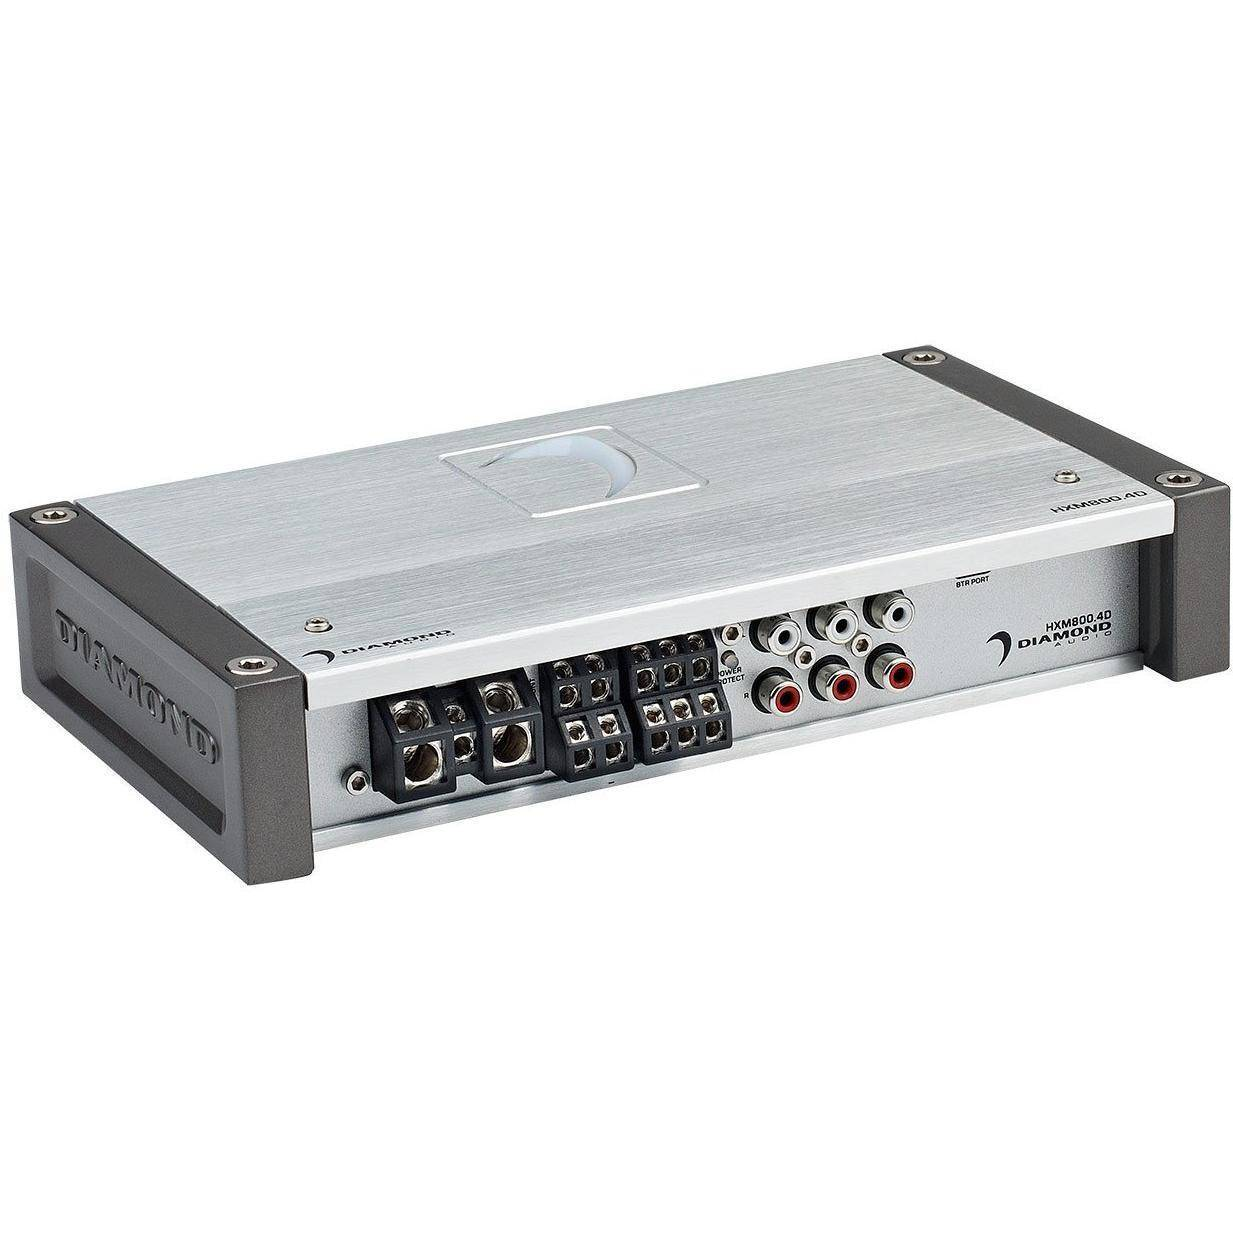 Diamond Audio HXM800.4D 800W RMS 4-Channel Amplifier for Harley Bagger